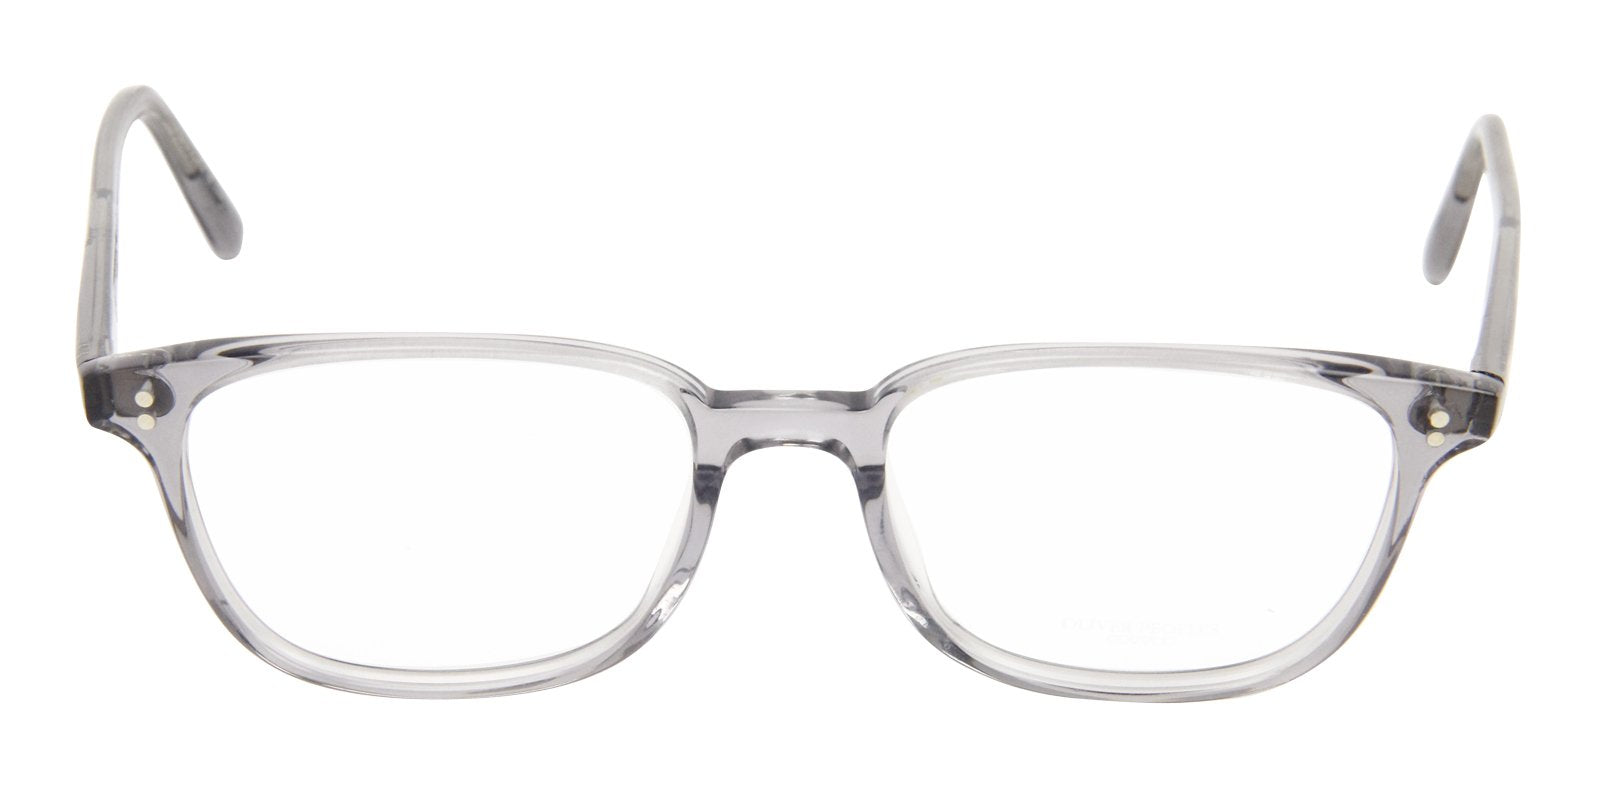 Oliver Peoples - Maslon Clear Rectangular Unisex Eyeglasses - 51mm-Eyeglasses-Designer Eyes